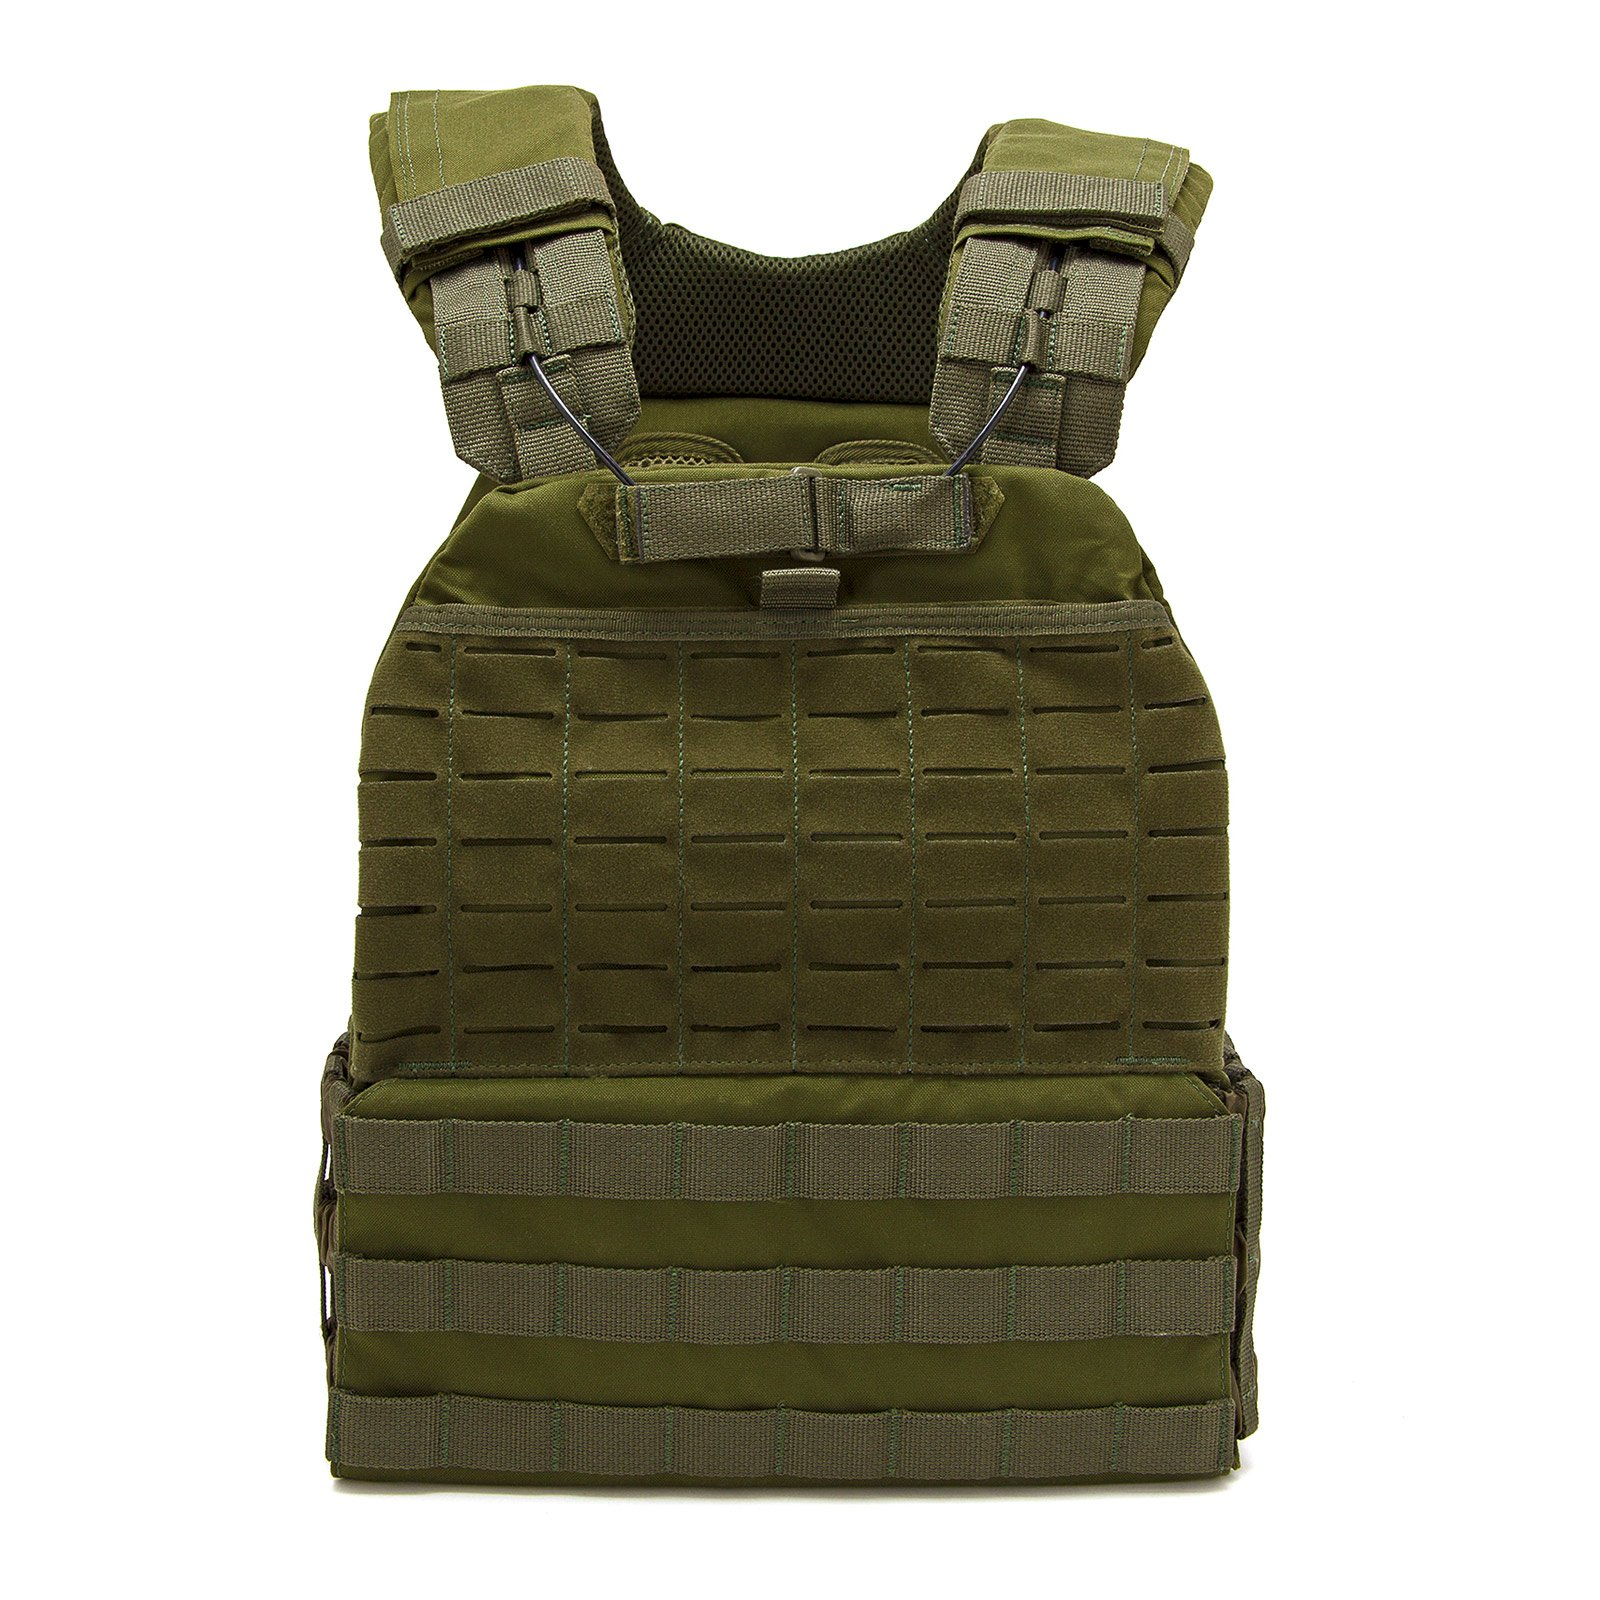 Fringe Sport Adjustable Tactical Weight Plate Vest / 10lb, 15lb or 20lb / Modular Plate Carrier for Training & Conditioning (15lb, Green)